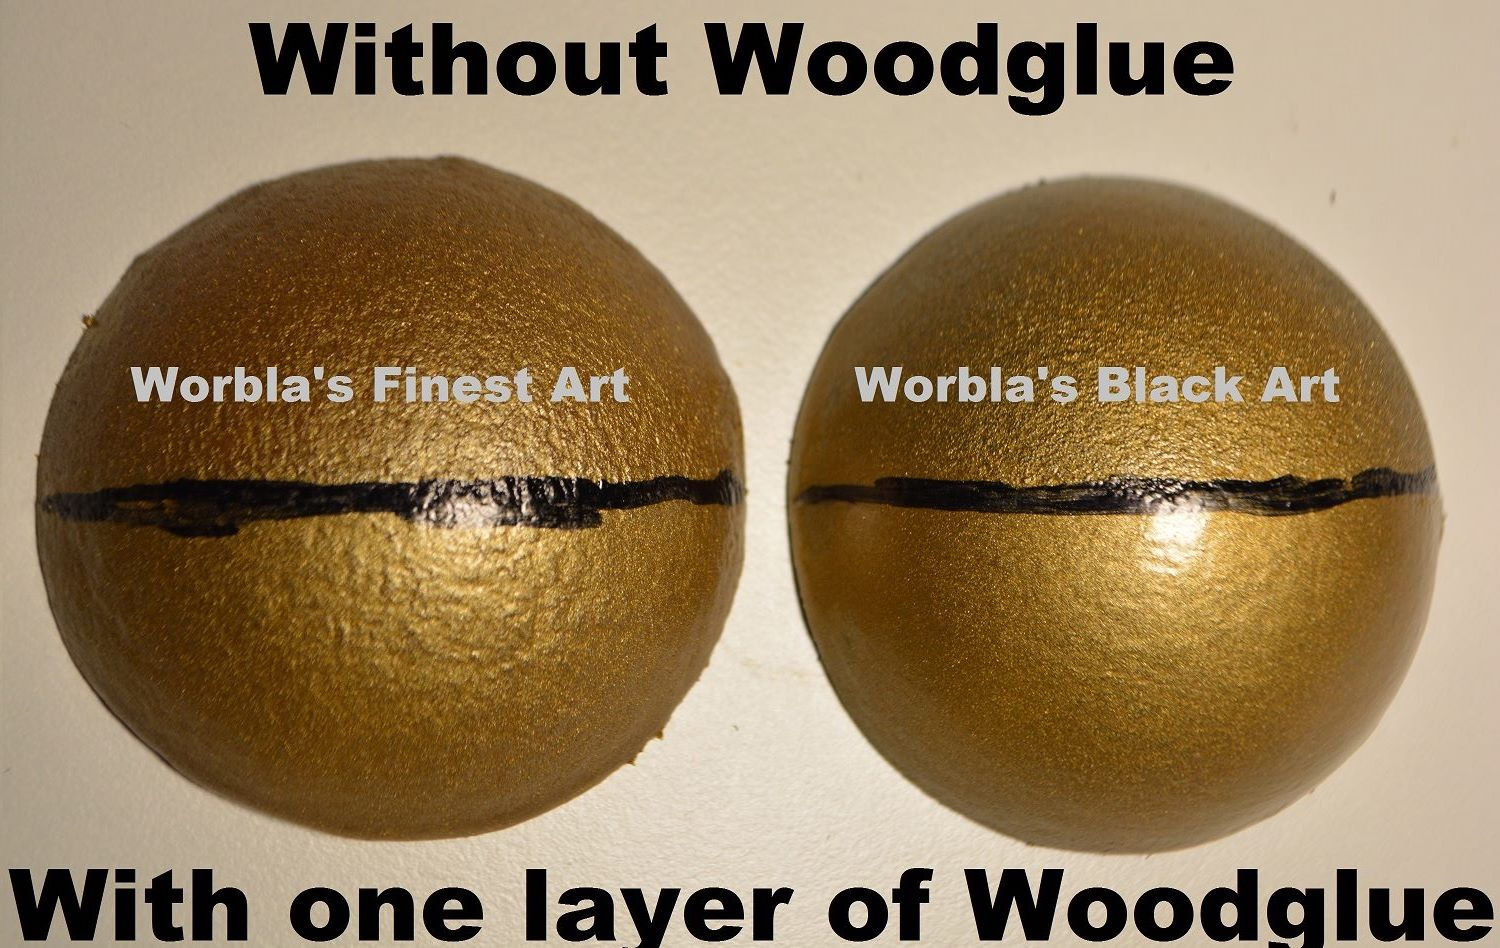 Another  example from Erza Cosplay, showing a curved surface with the standard coating of wood glue and the differences between WFA and WBA